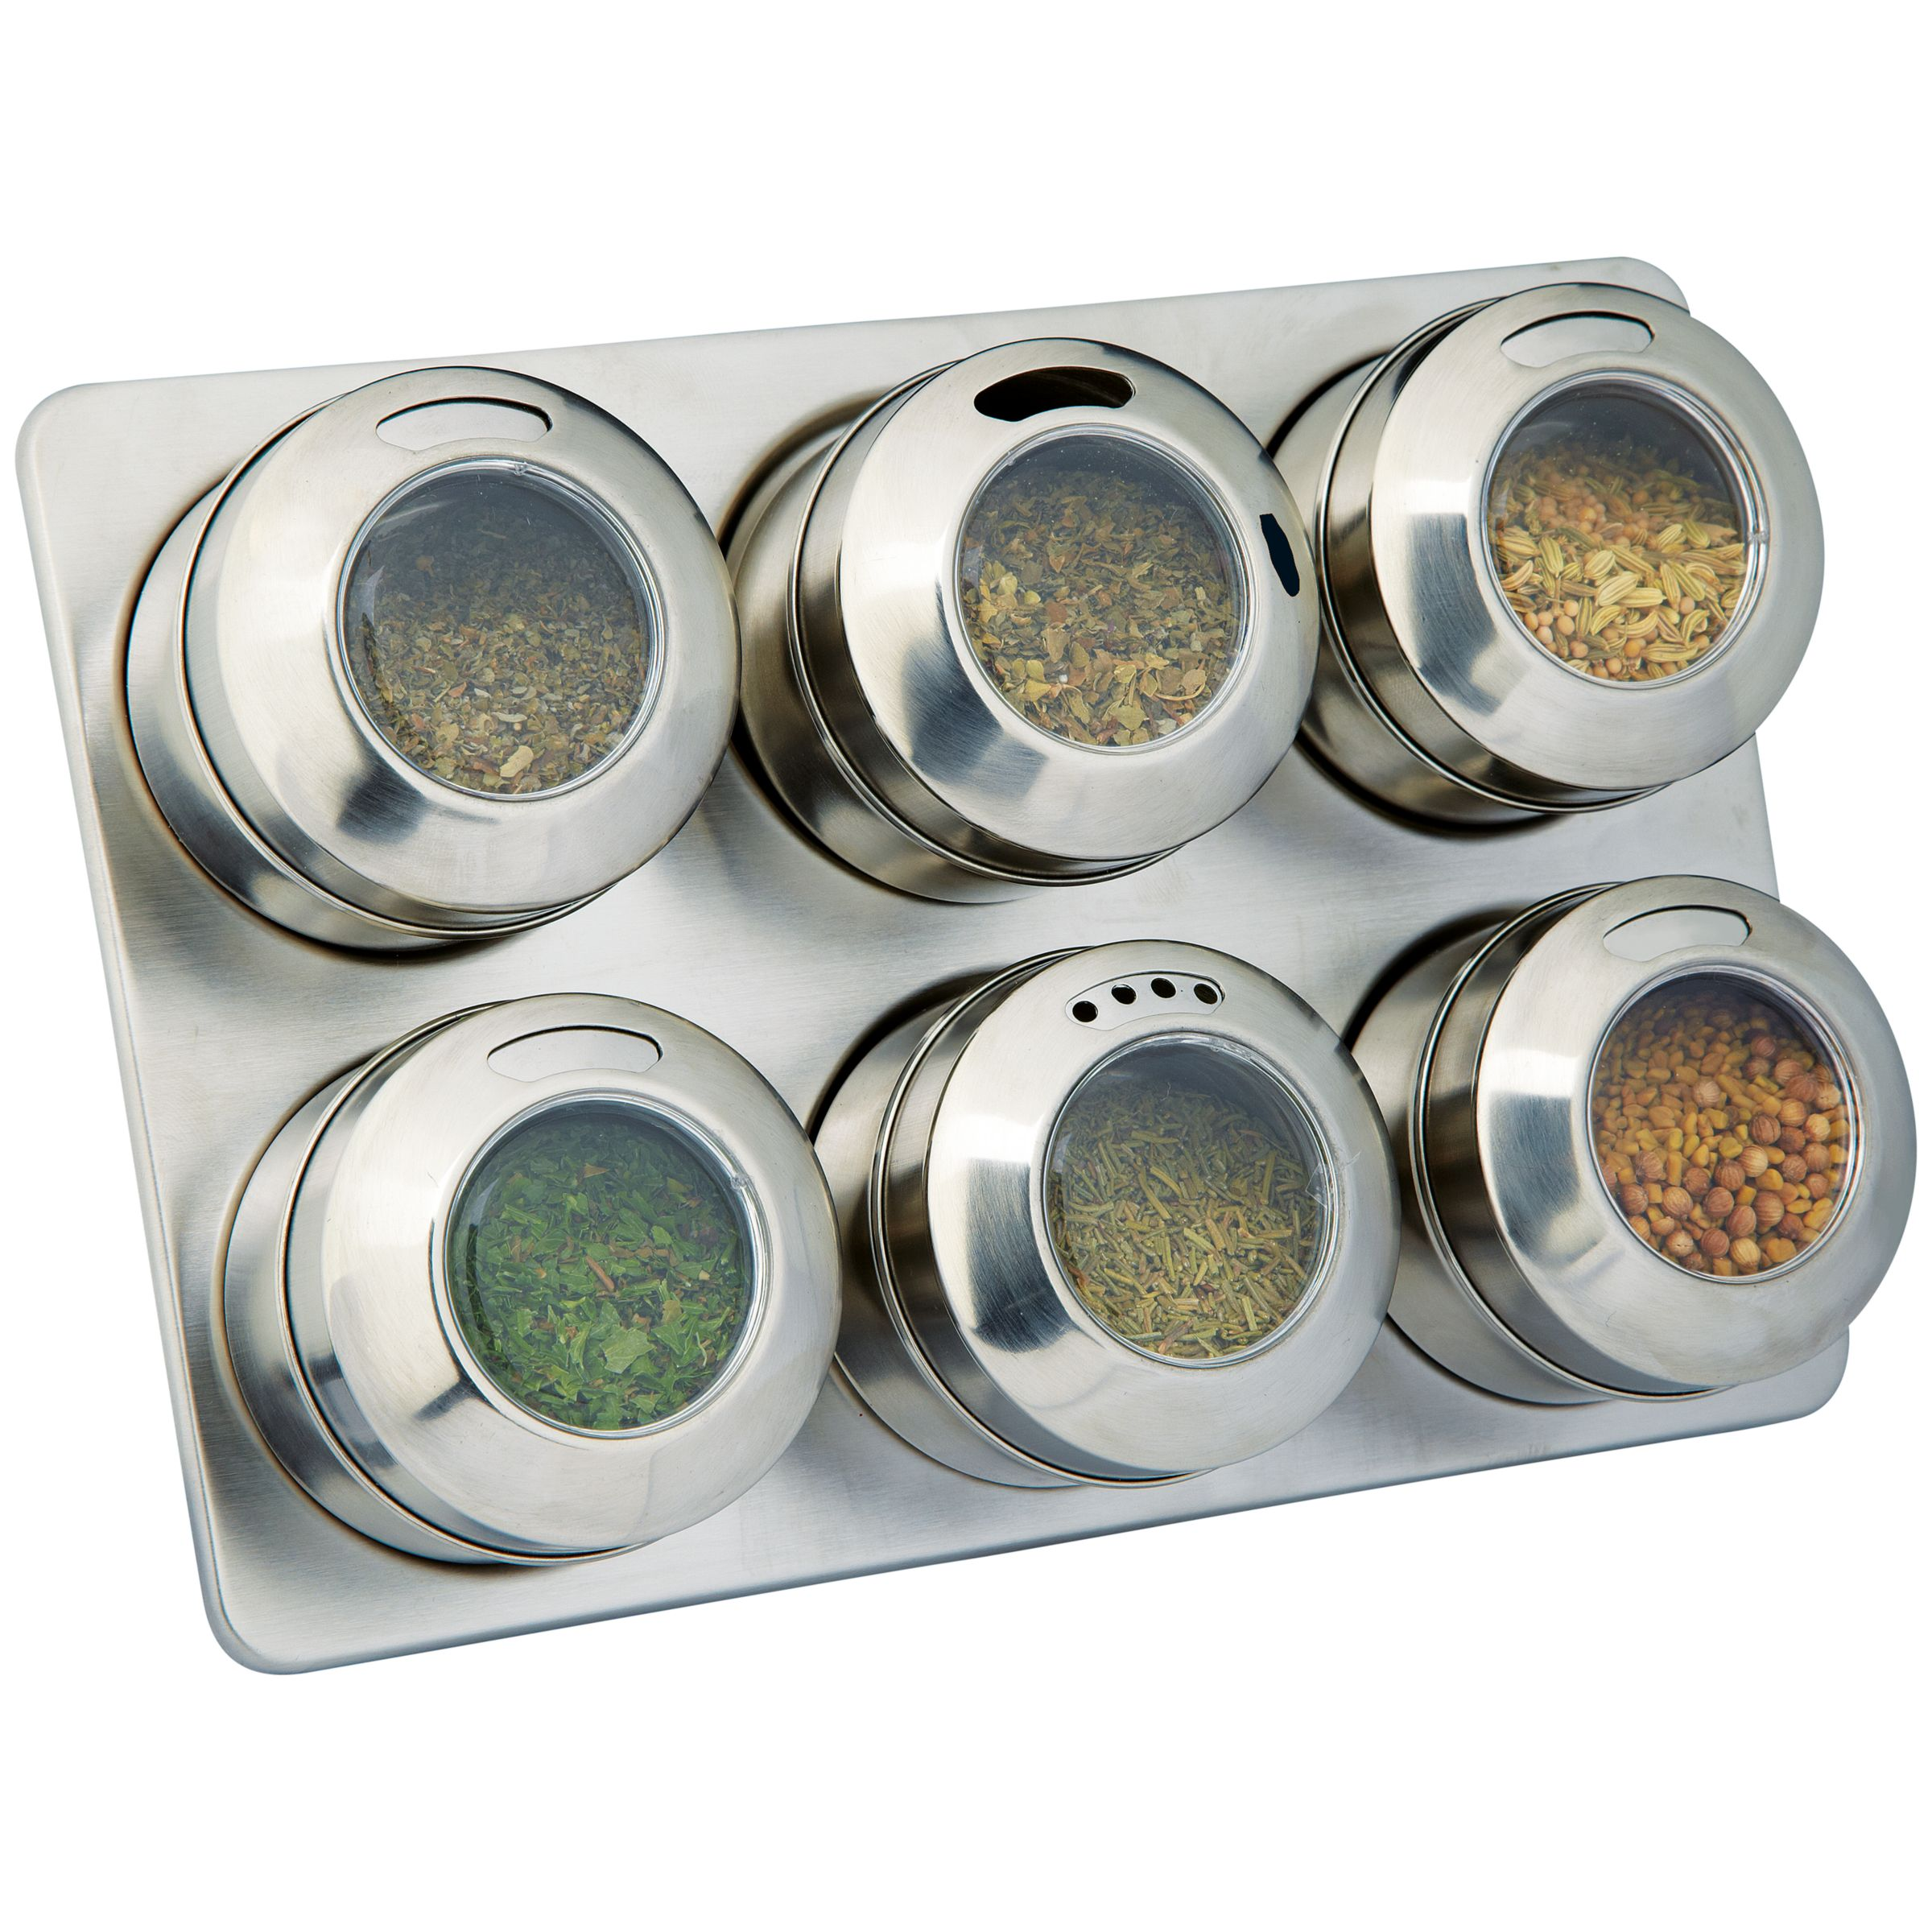 House by John Lewis 6 Jar Magnetic Spice Rack